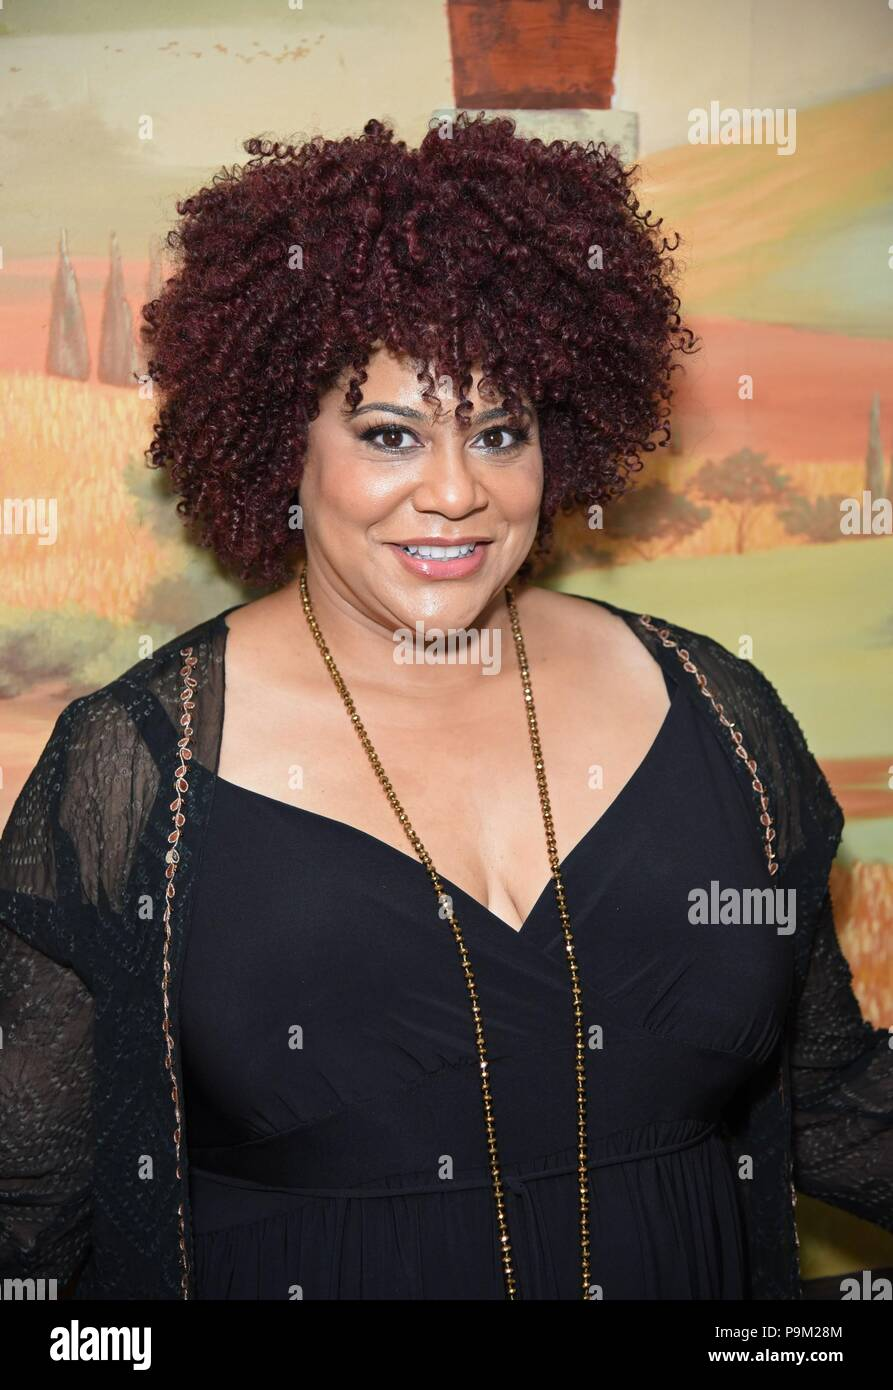 Forum on this topic: Darrin Brown, kim-coles/